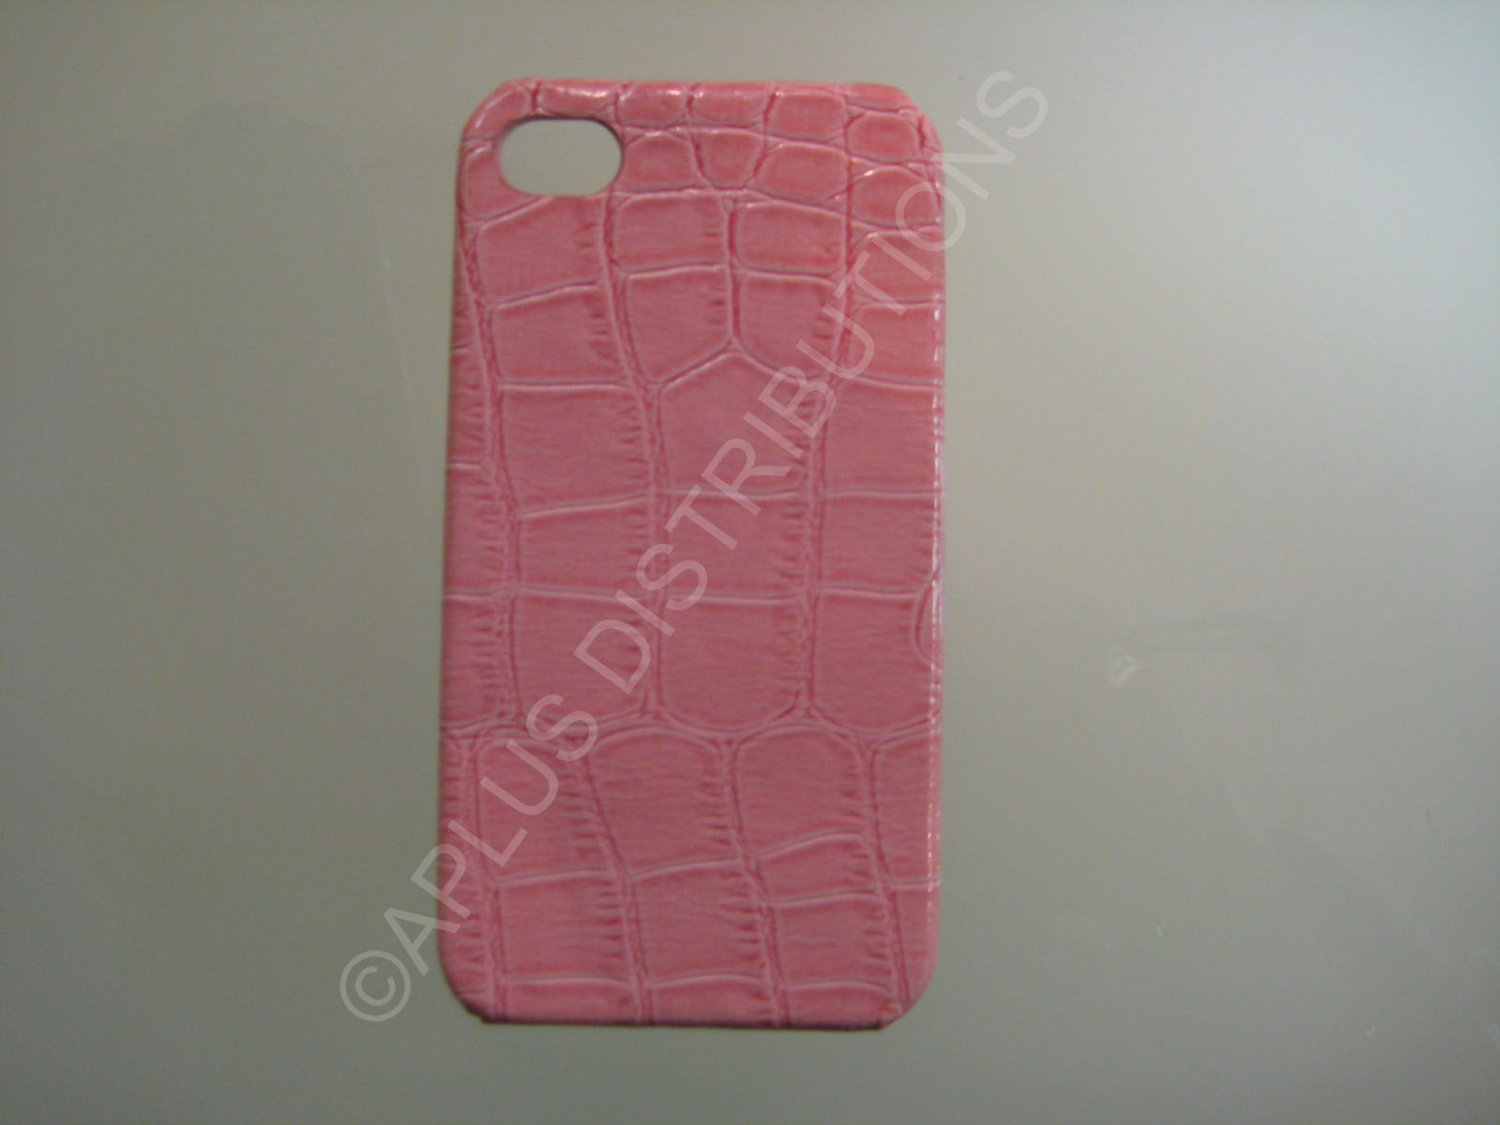 New Pink Alligator Skin Pattern Hard Protective Cover For iPhone 4 - (0049)